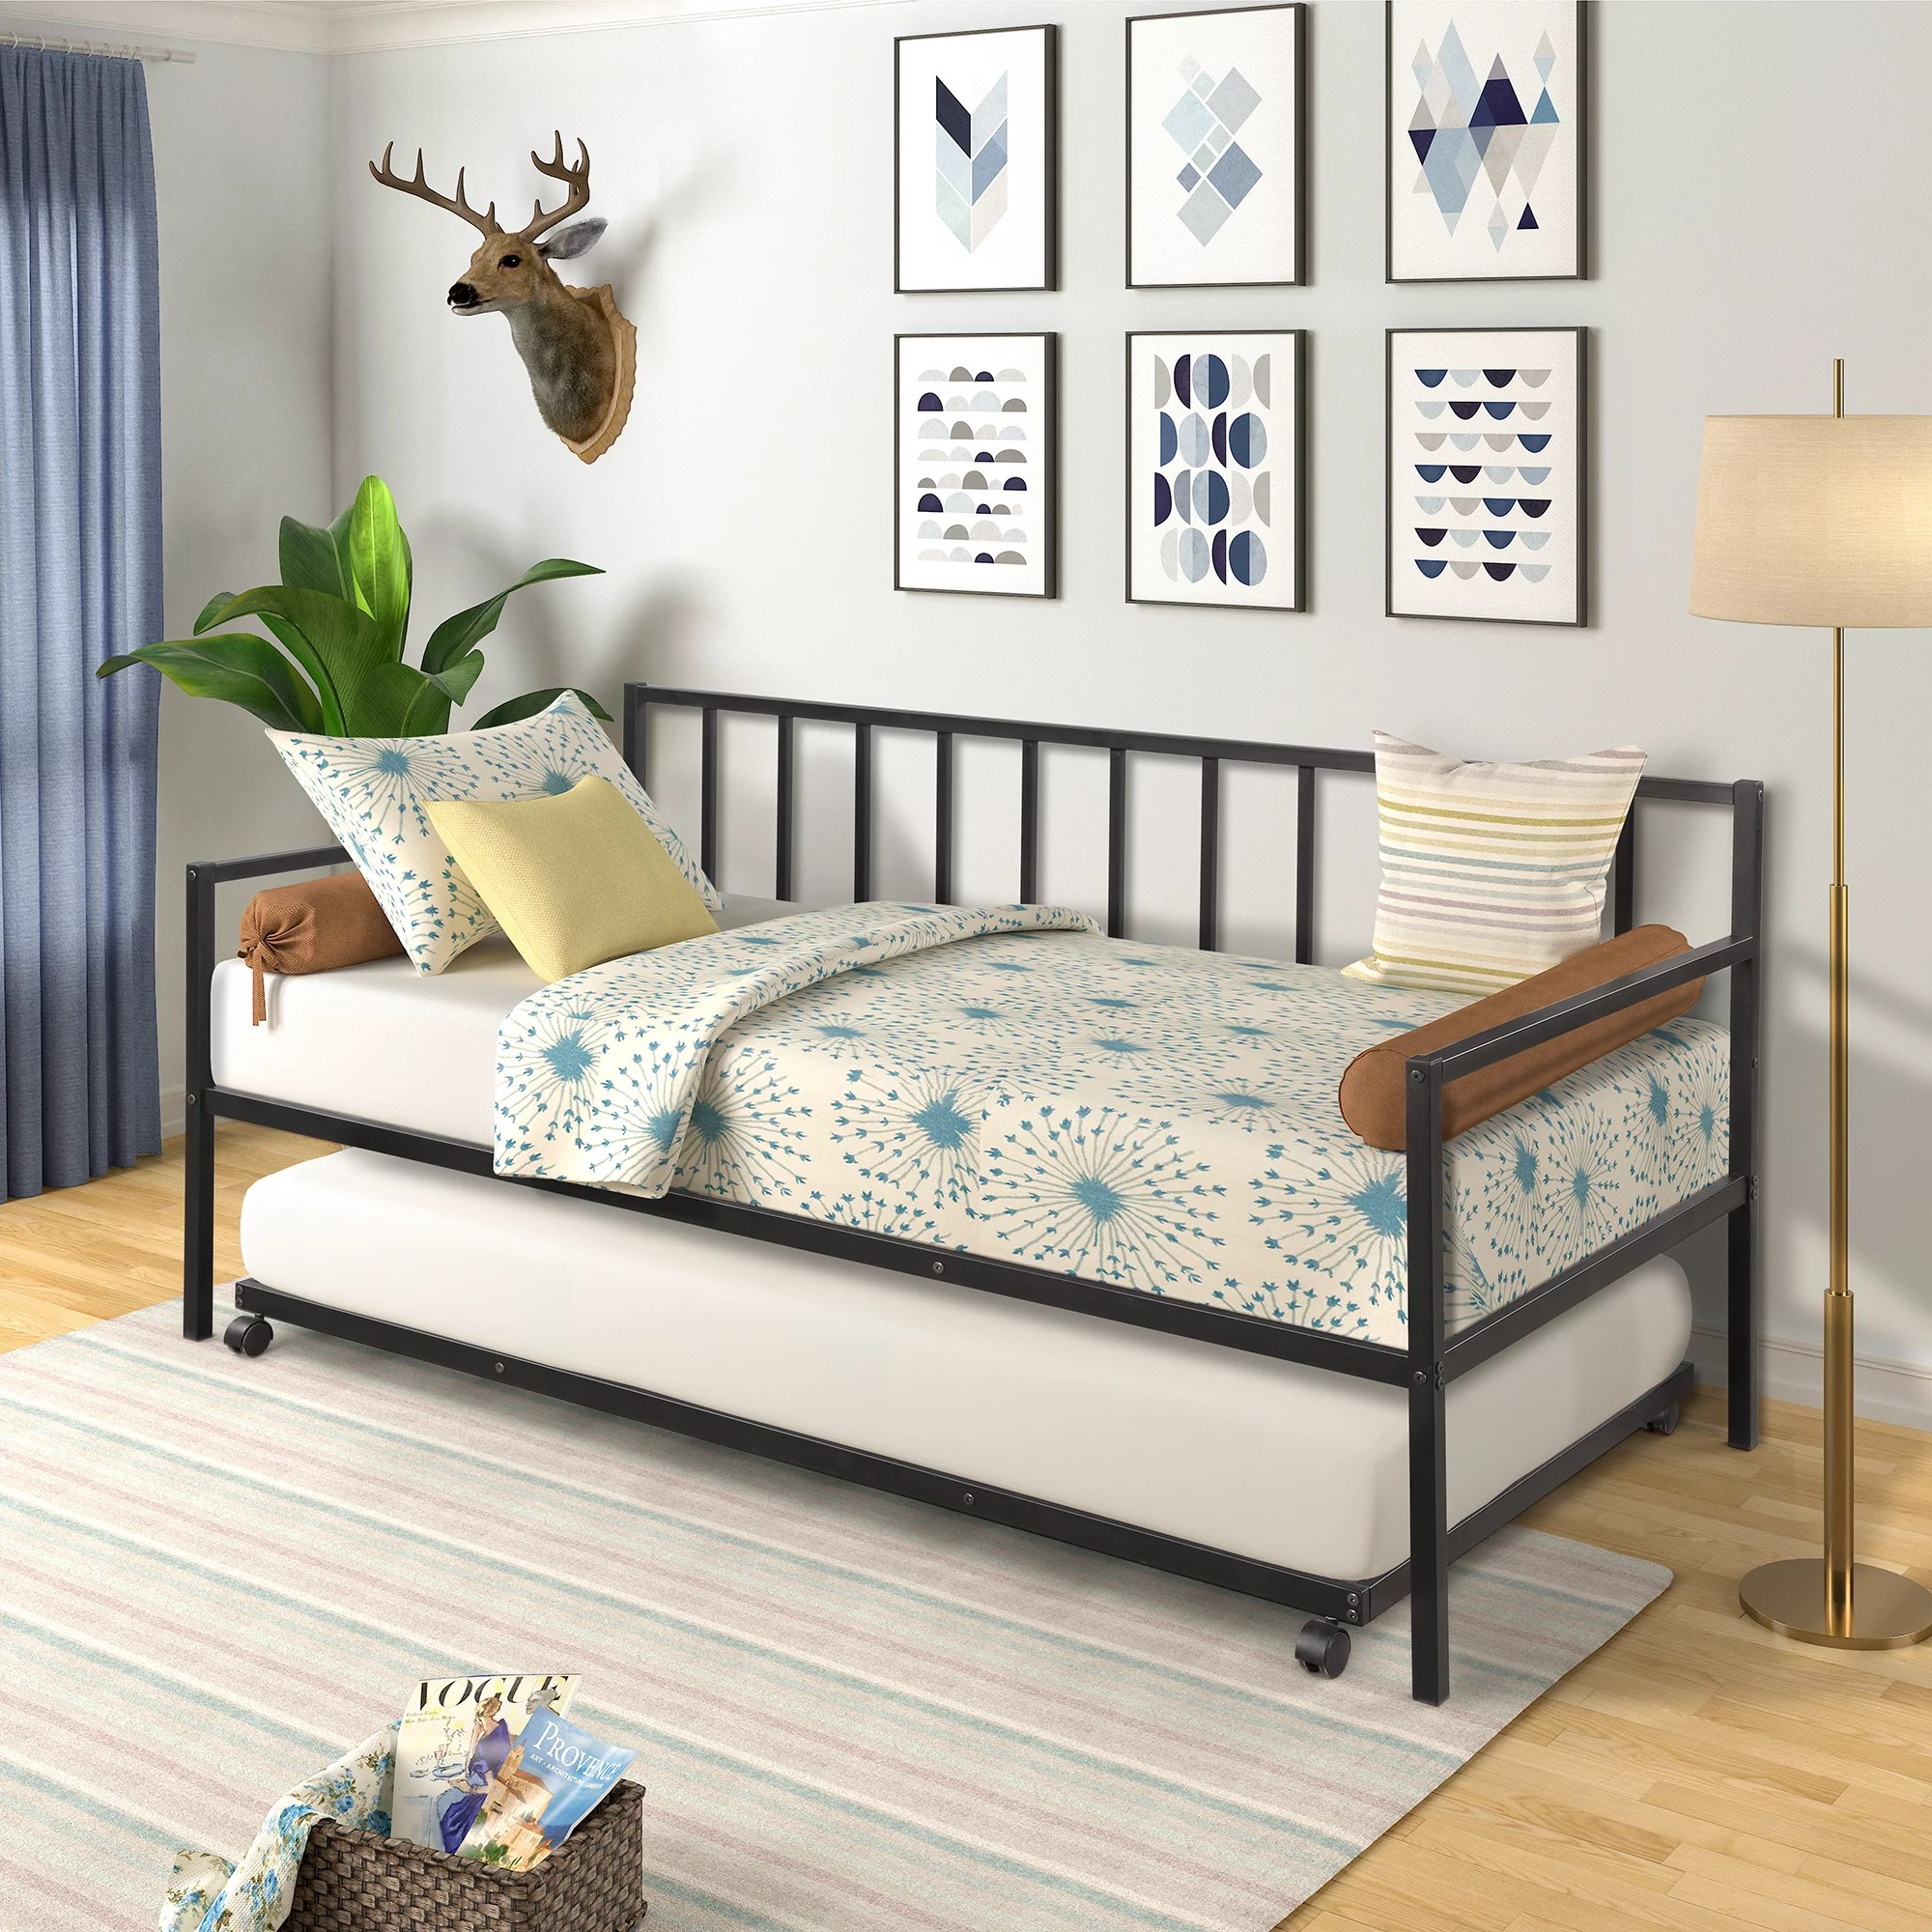 euroco twin metal daybed with trundle black